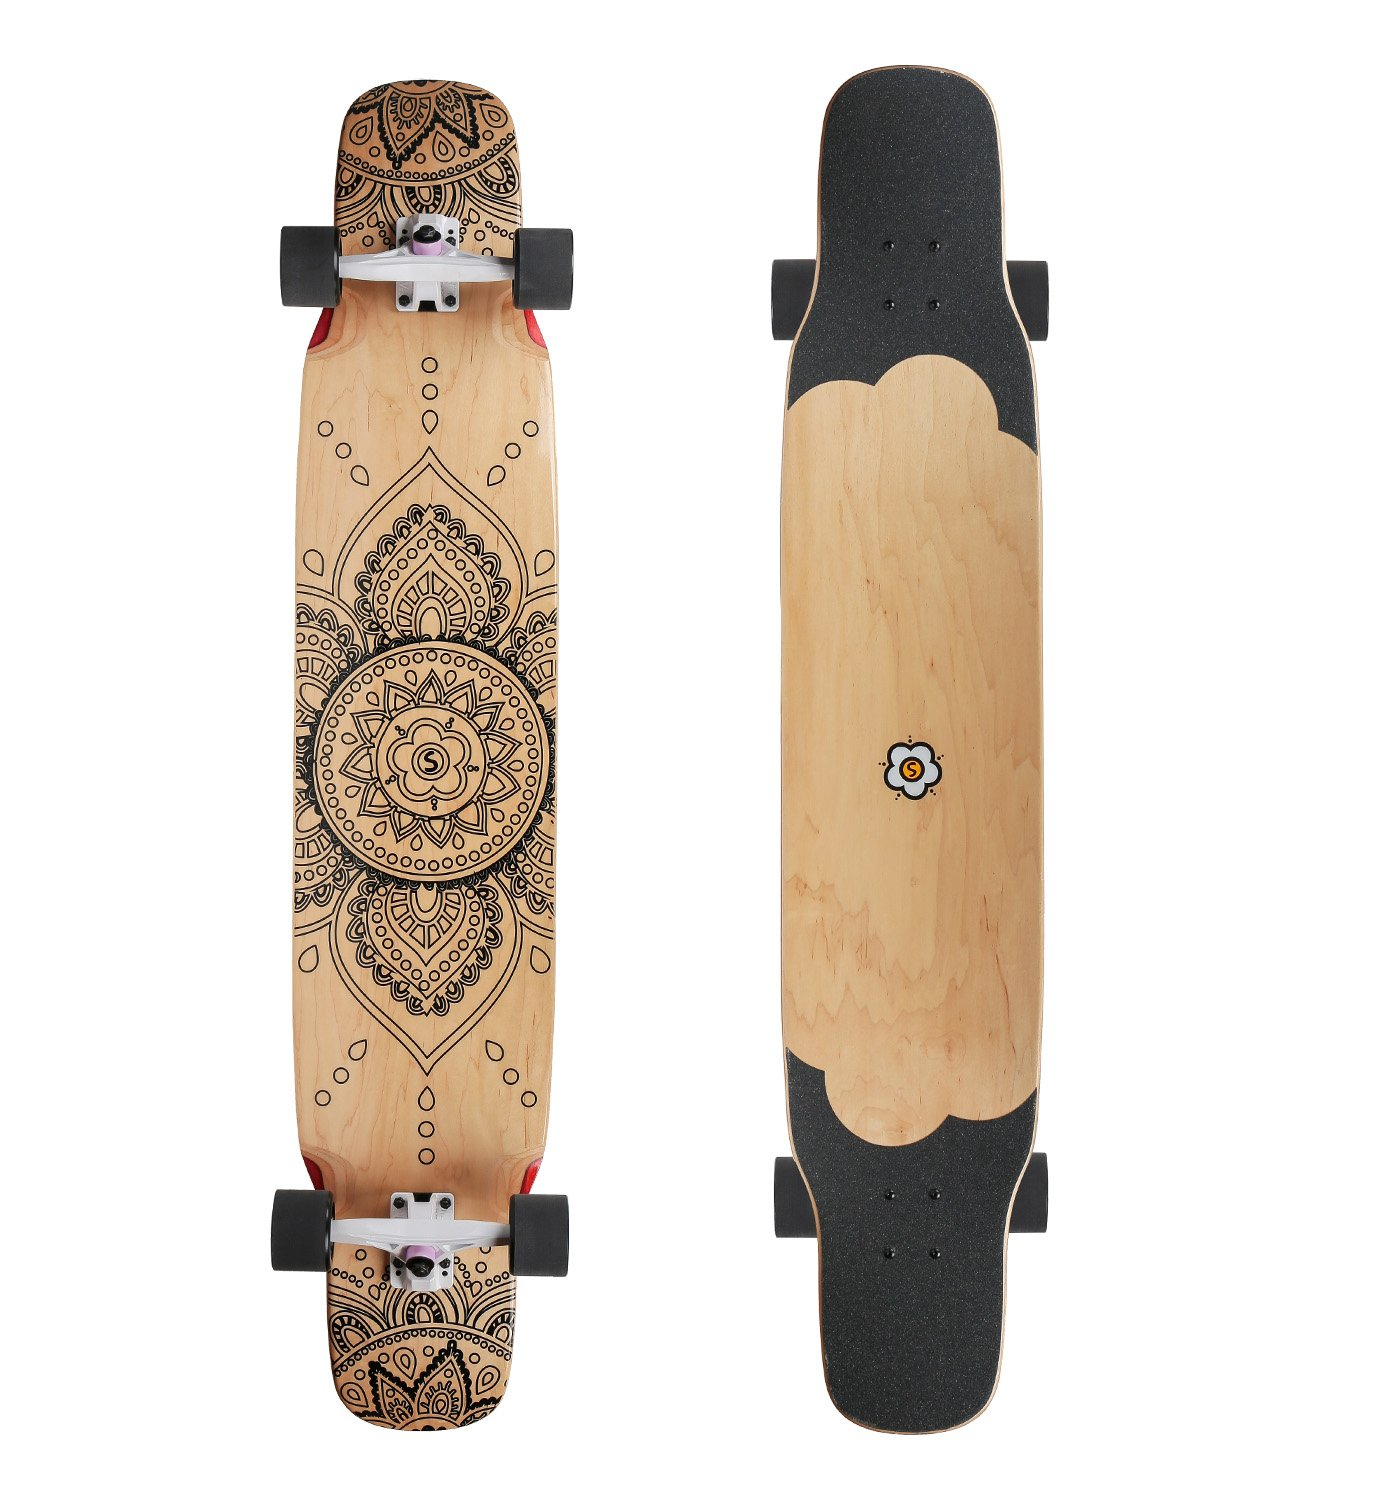 7 Plies Maple Unisex Professional Complete Longboard 46 inch Drop Deck for Dancing, Cruising, Carving, Free-Style and Downhill by HN Skateboard